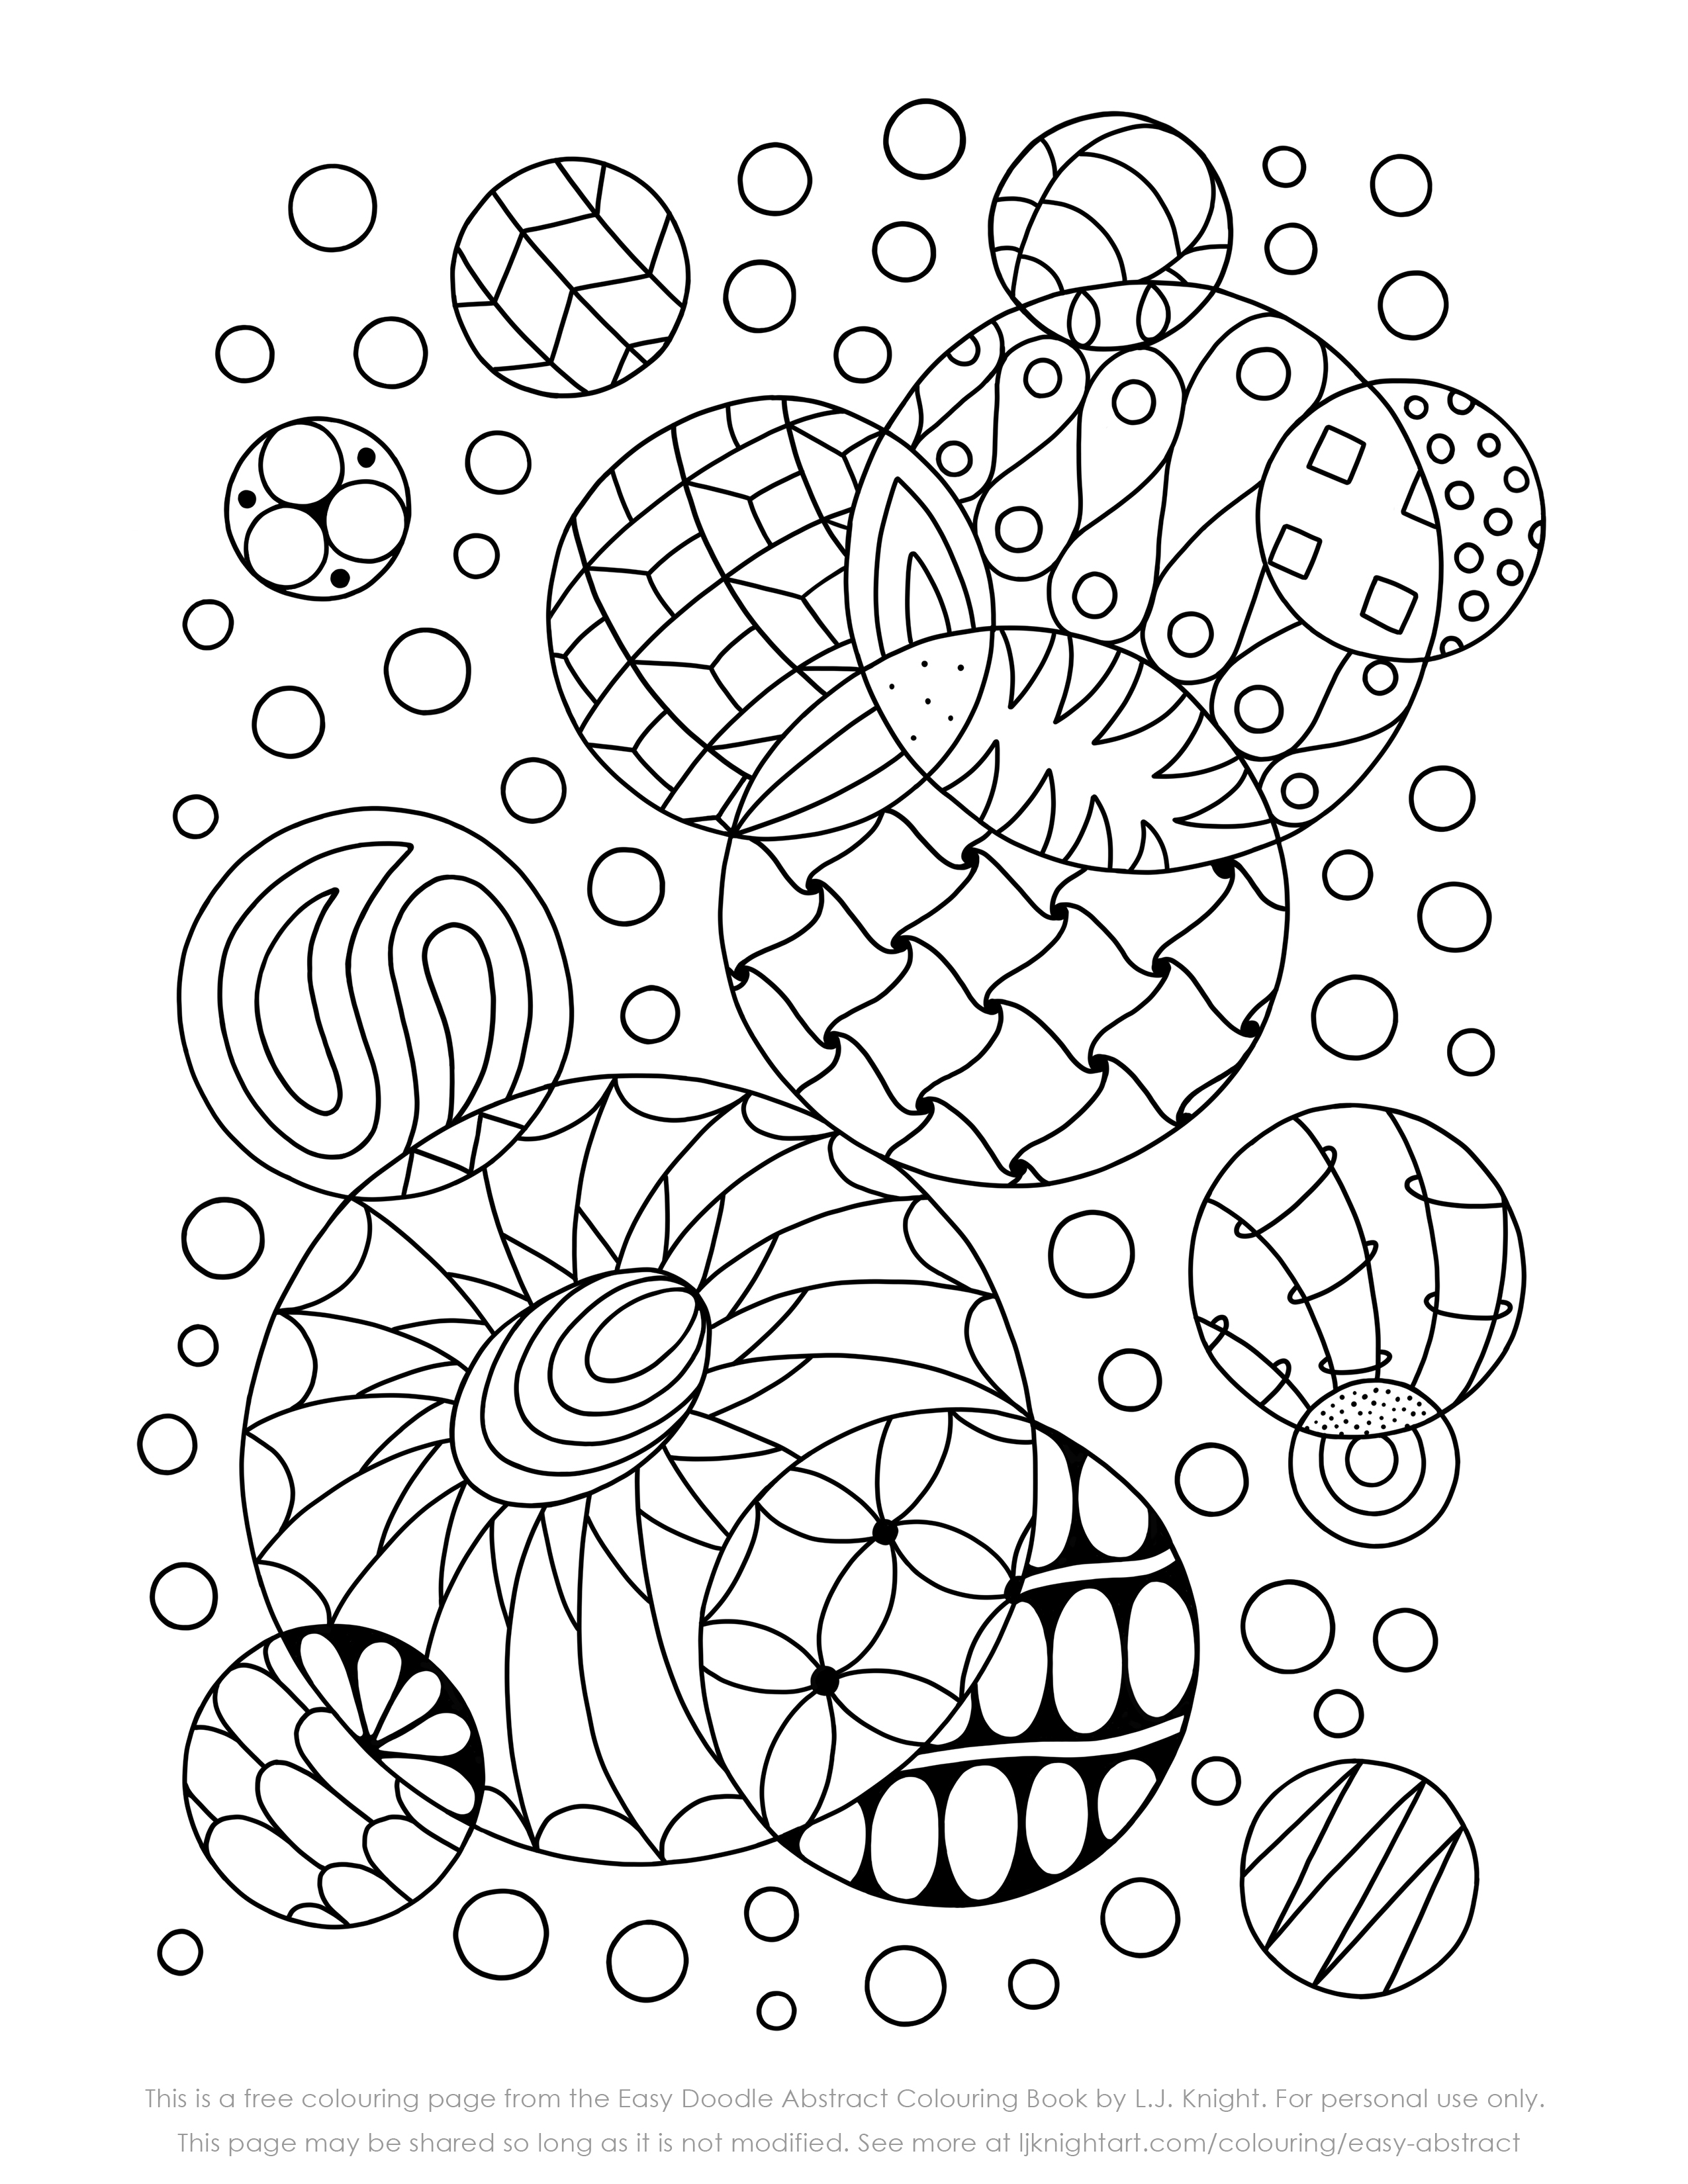 doodle coloring pages doodle art to print for free doodle art kids coloring pages doodle pages coloring